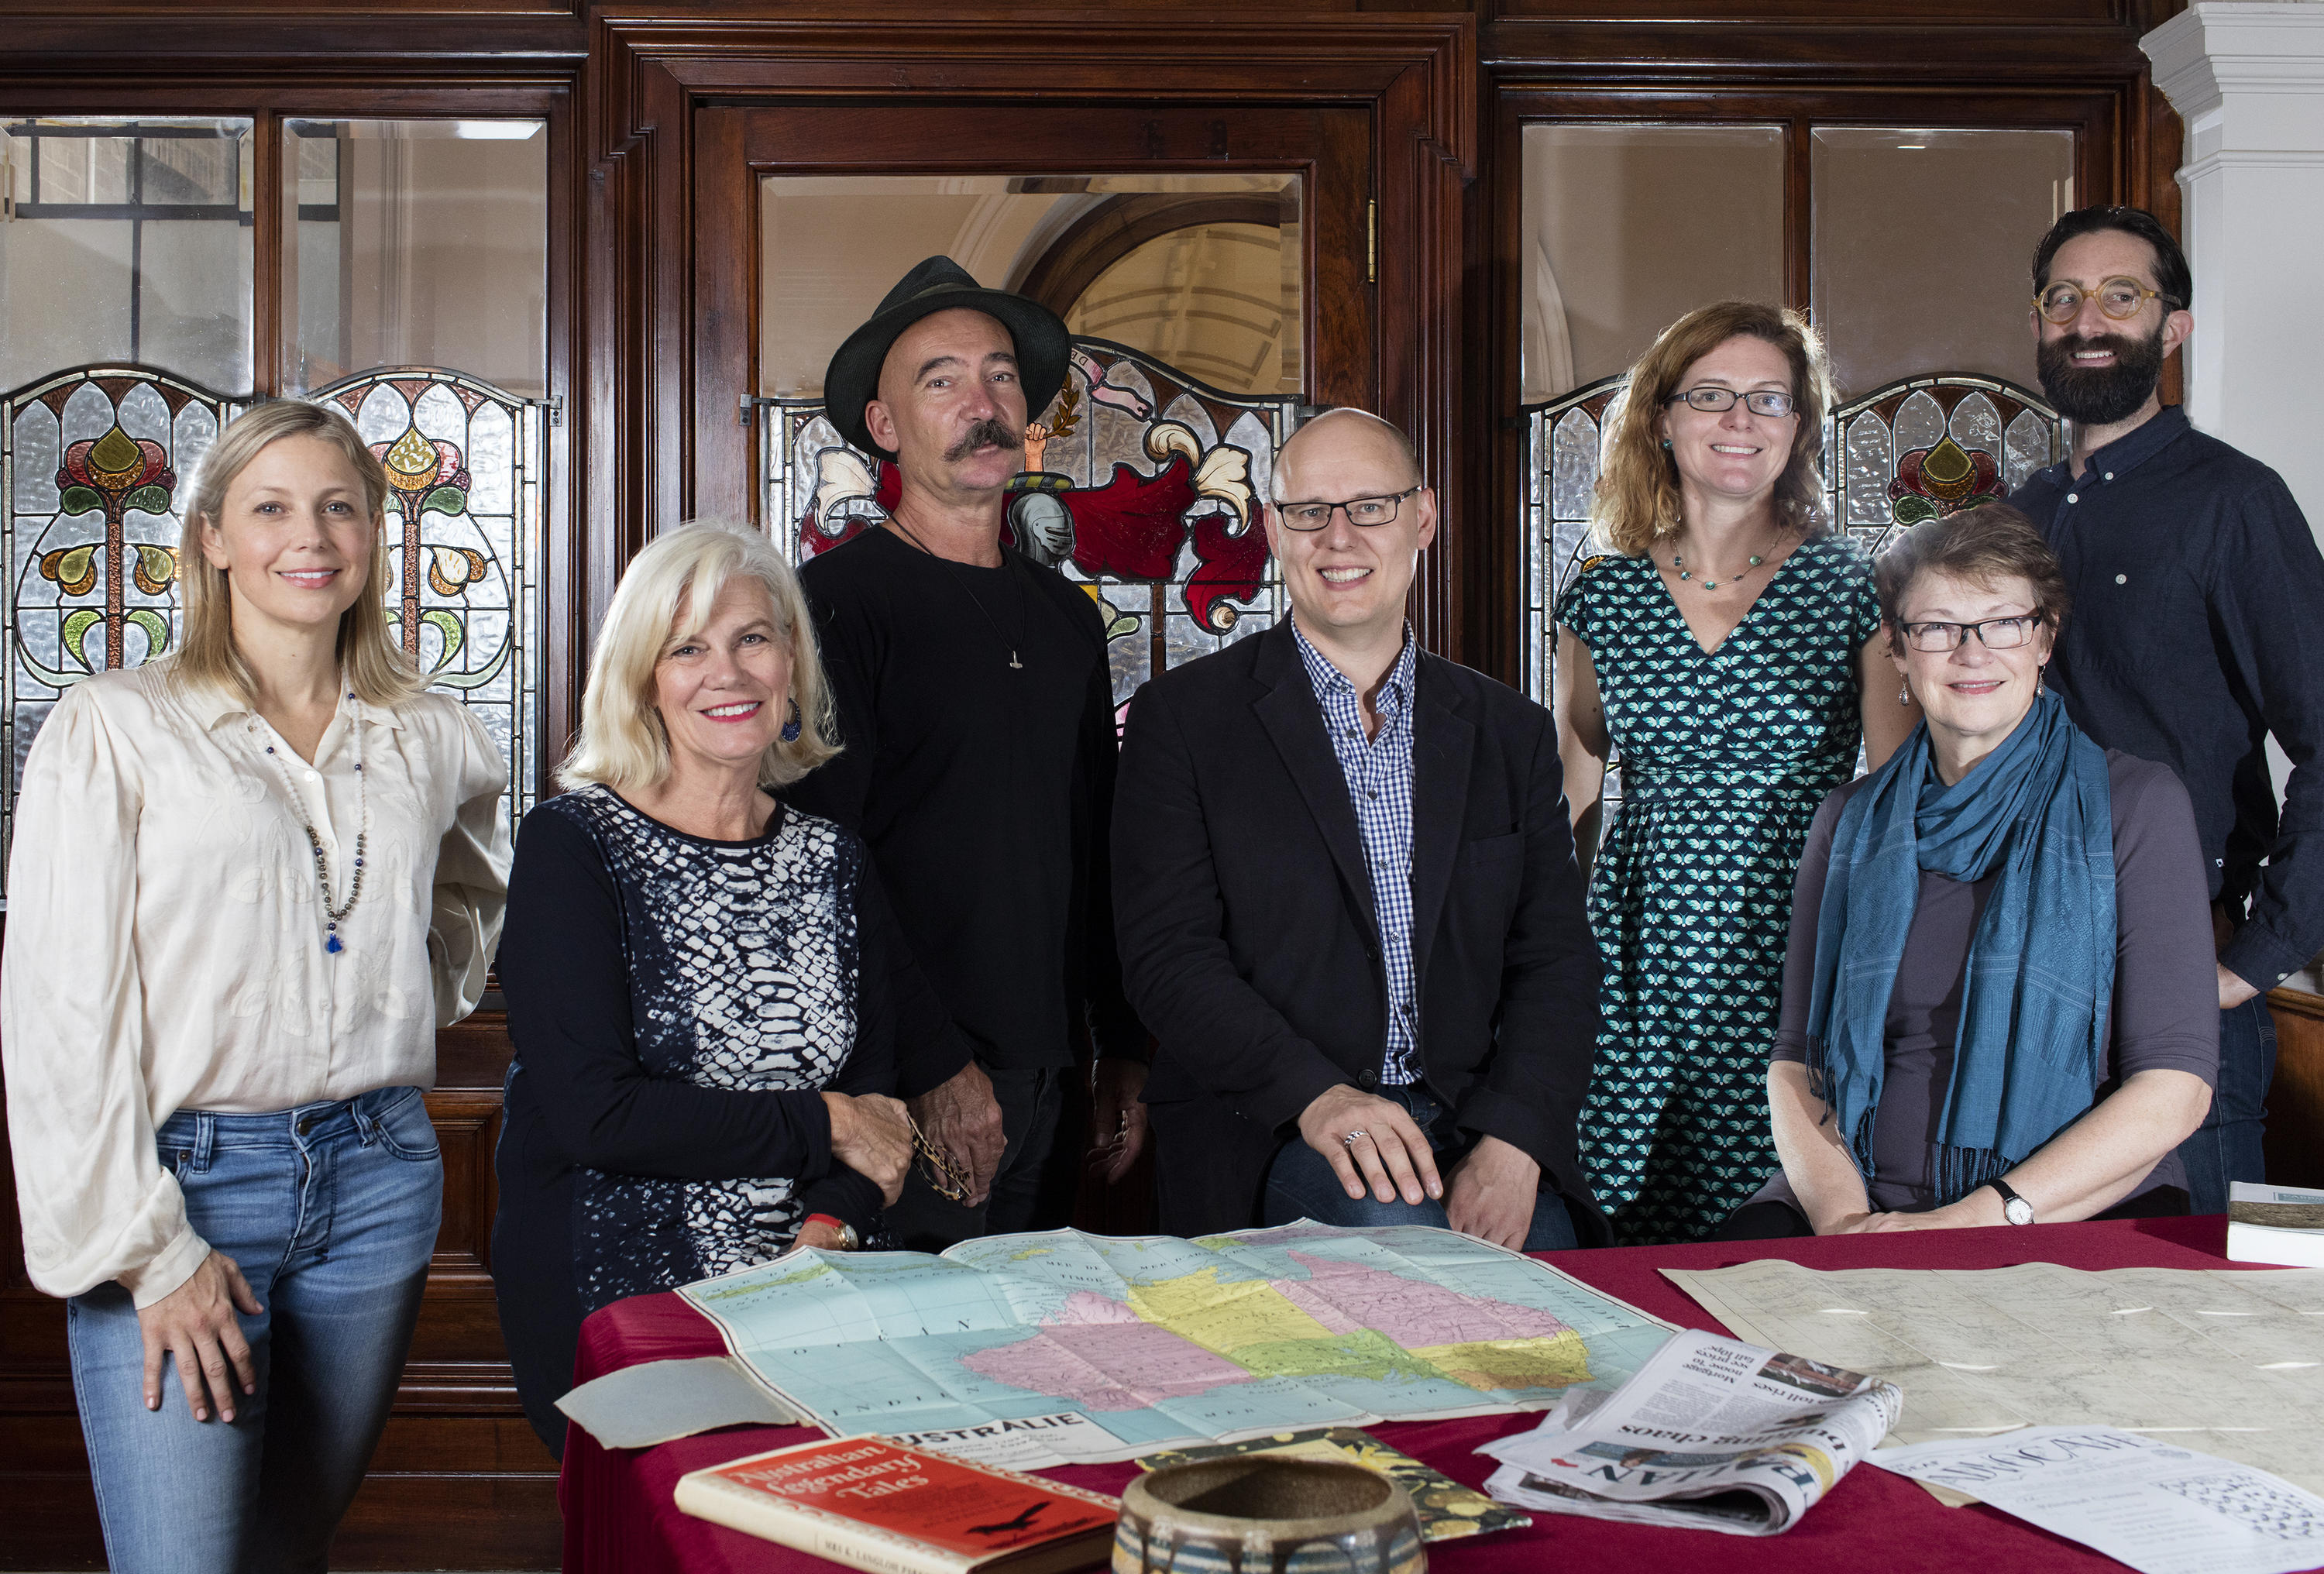 State Library of NSW Welcomes 2017 Fellows from left to right: Rachael Coopes, Jane Singleton, Stephen Gapps, Robert Crawford, Isabella Alexander, Breda Carty and Lee Stickells